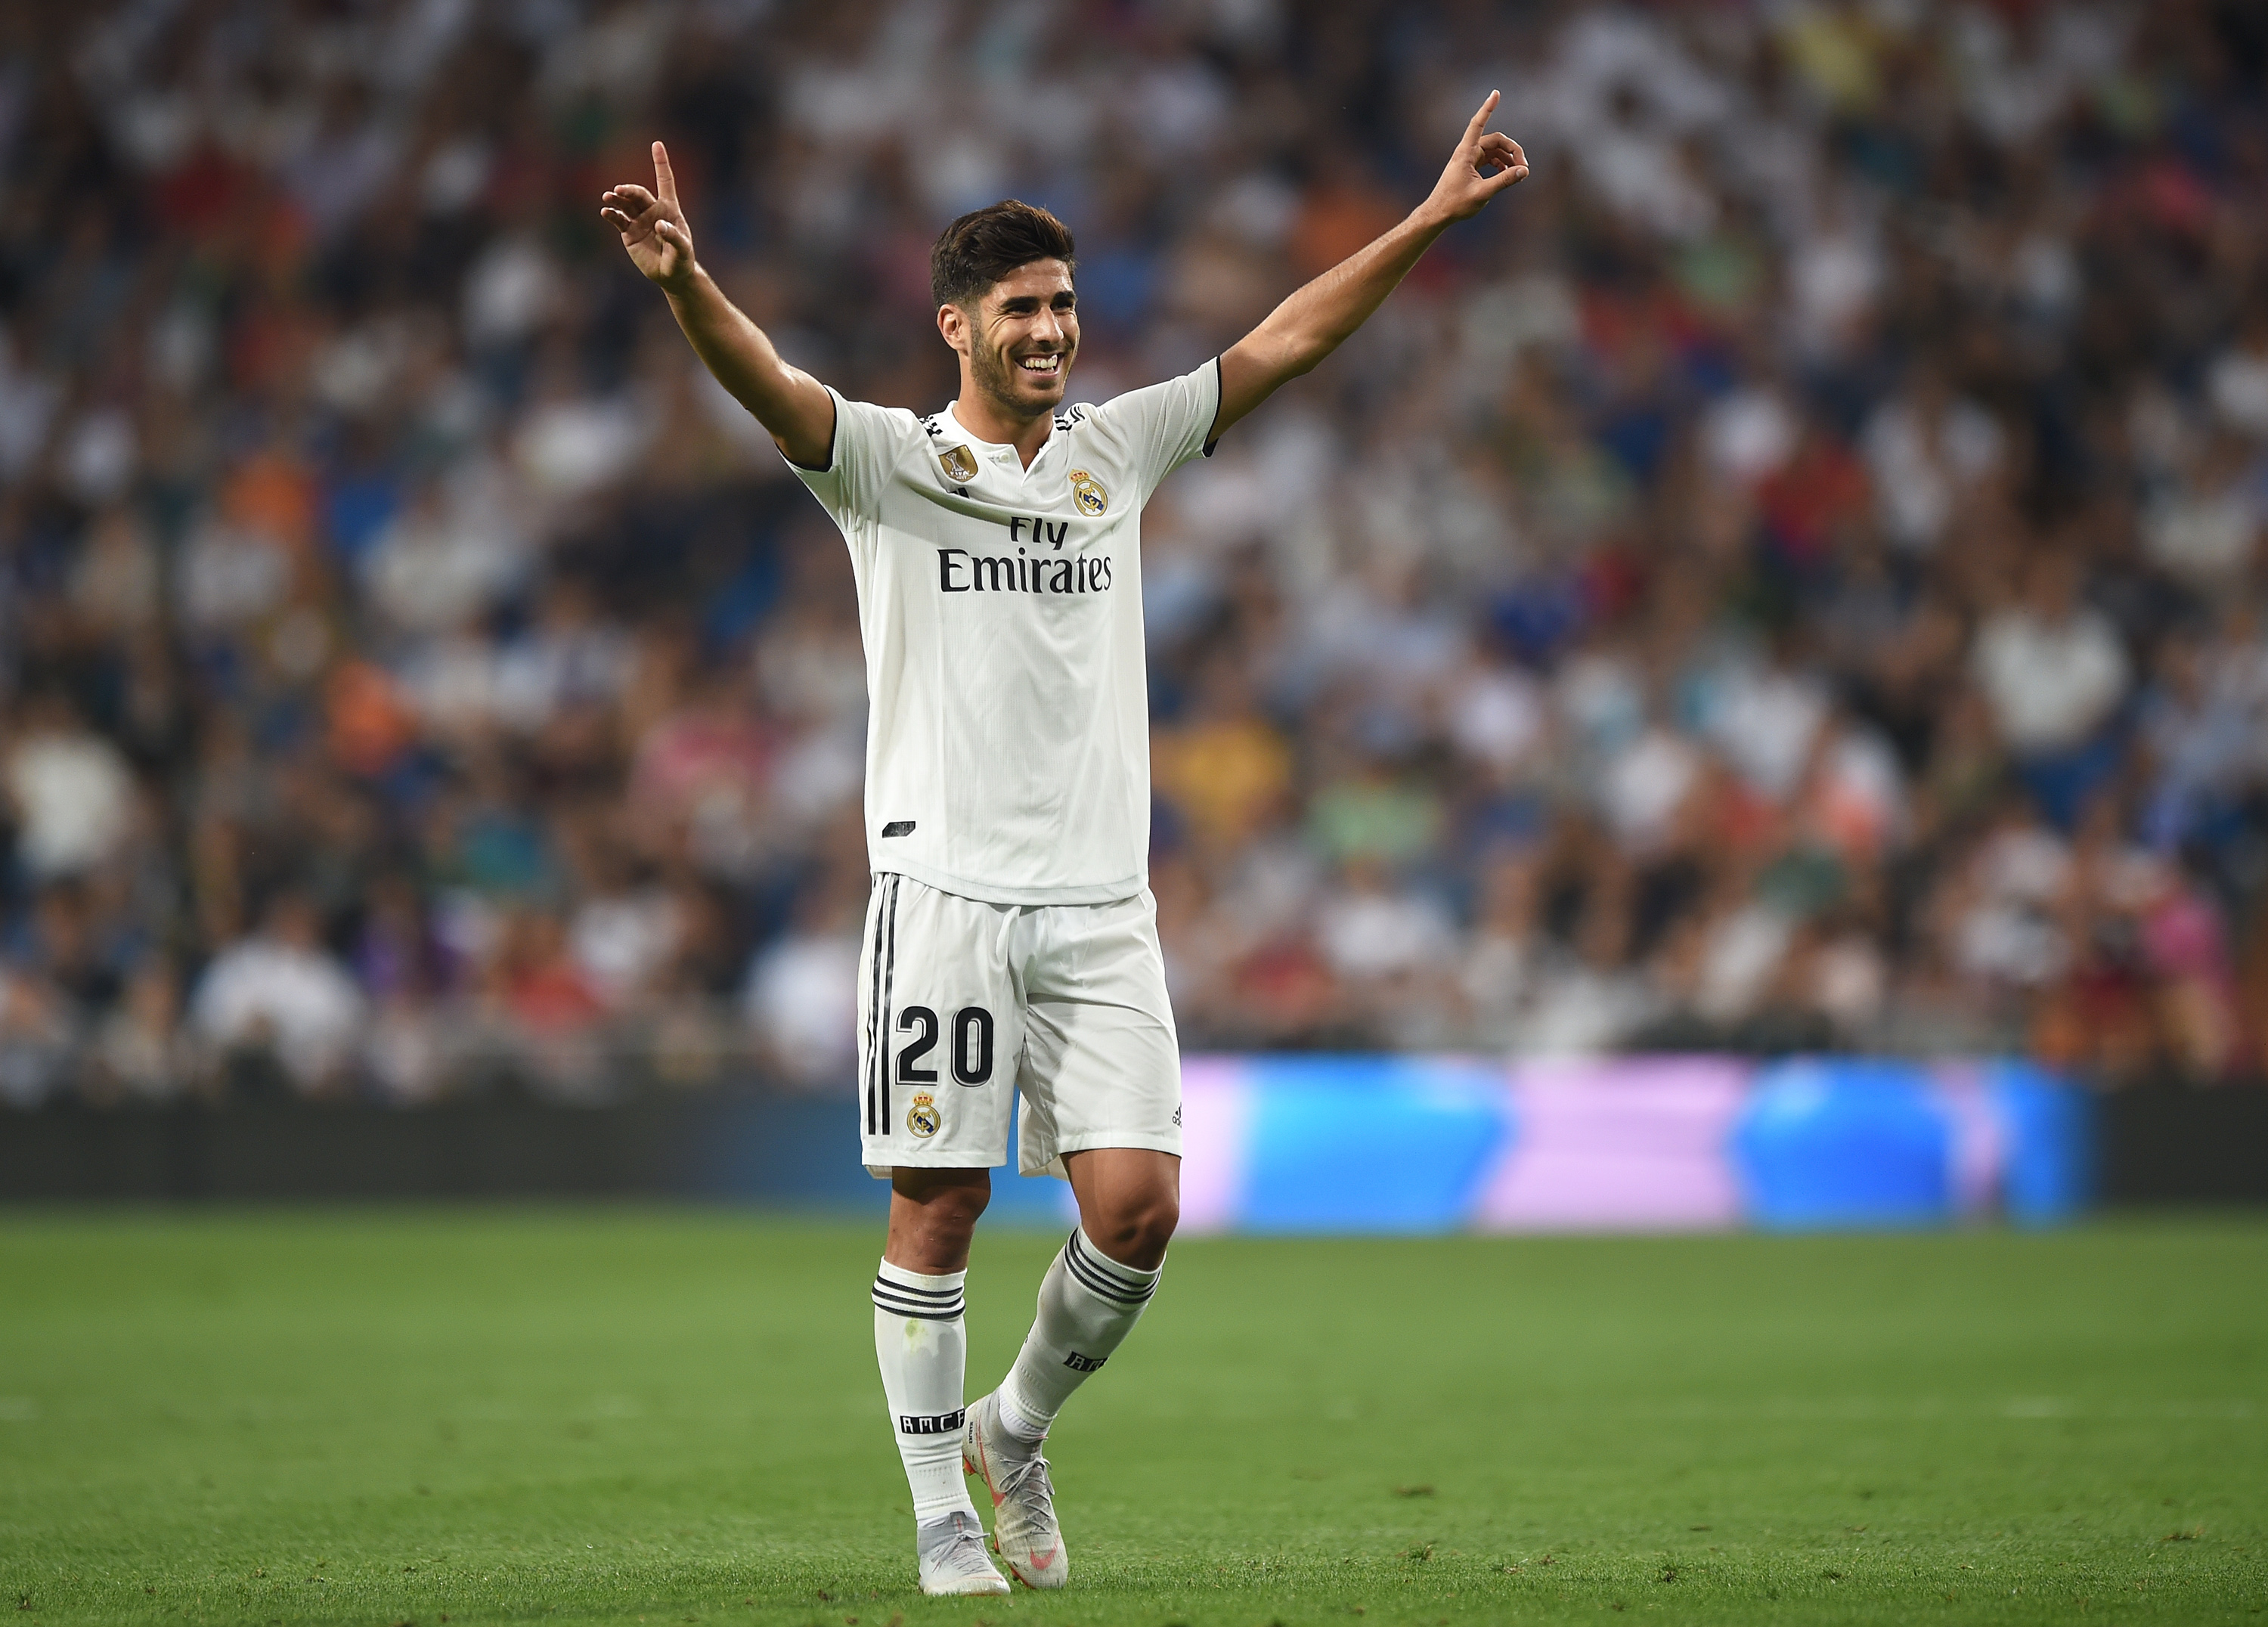 Will Asensio make his chance count? (Photo by Denis Doyle/Getty Images,)